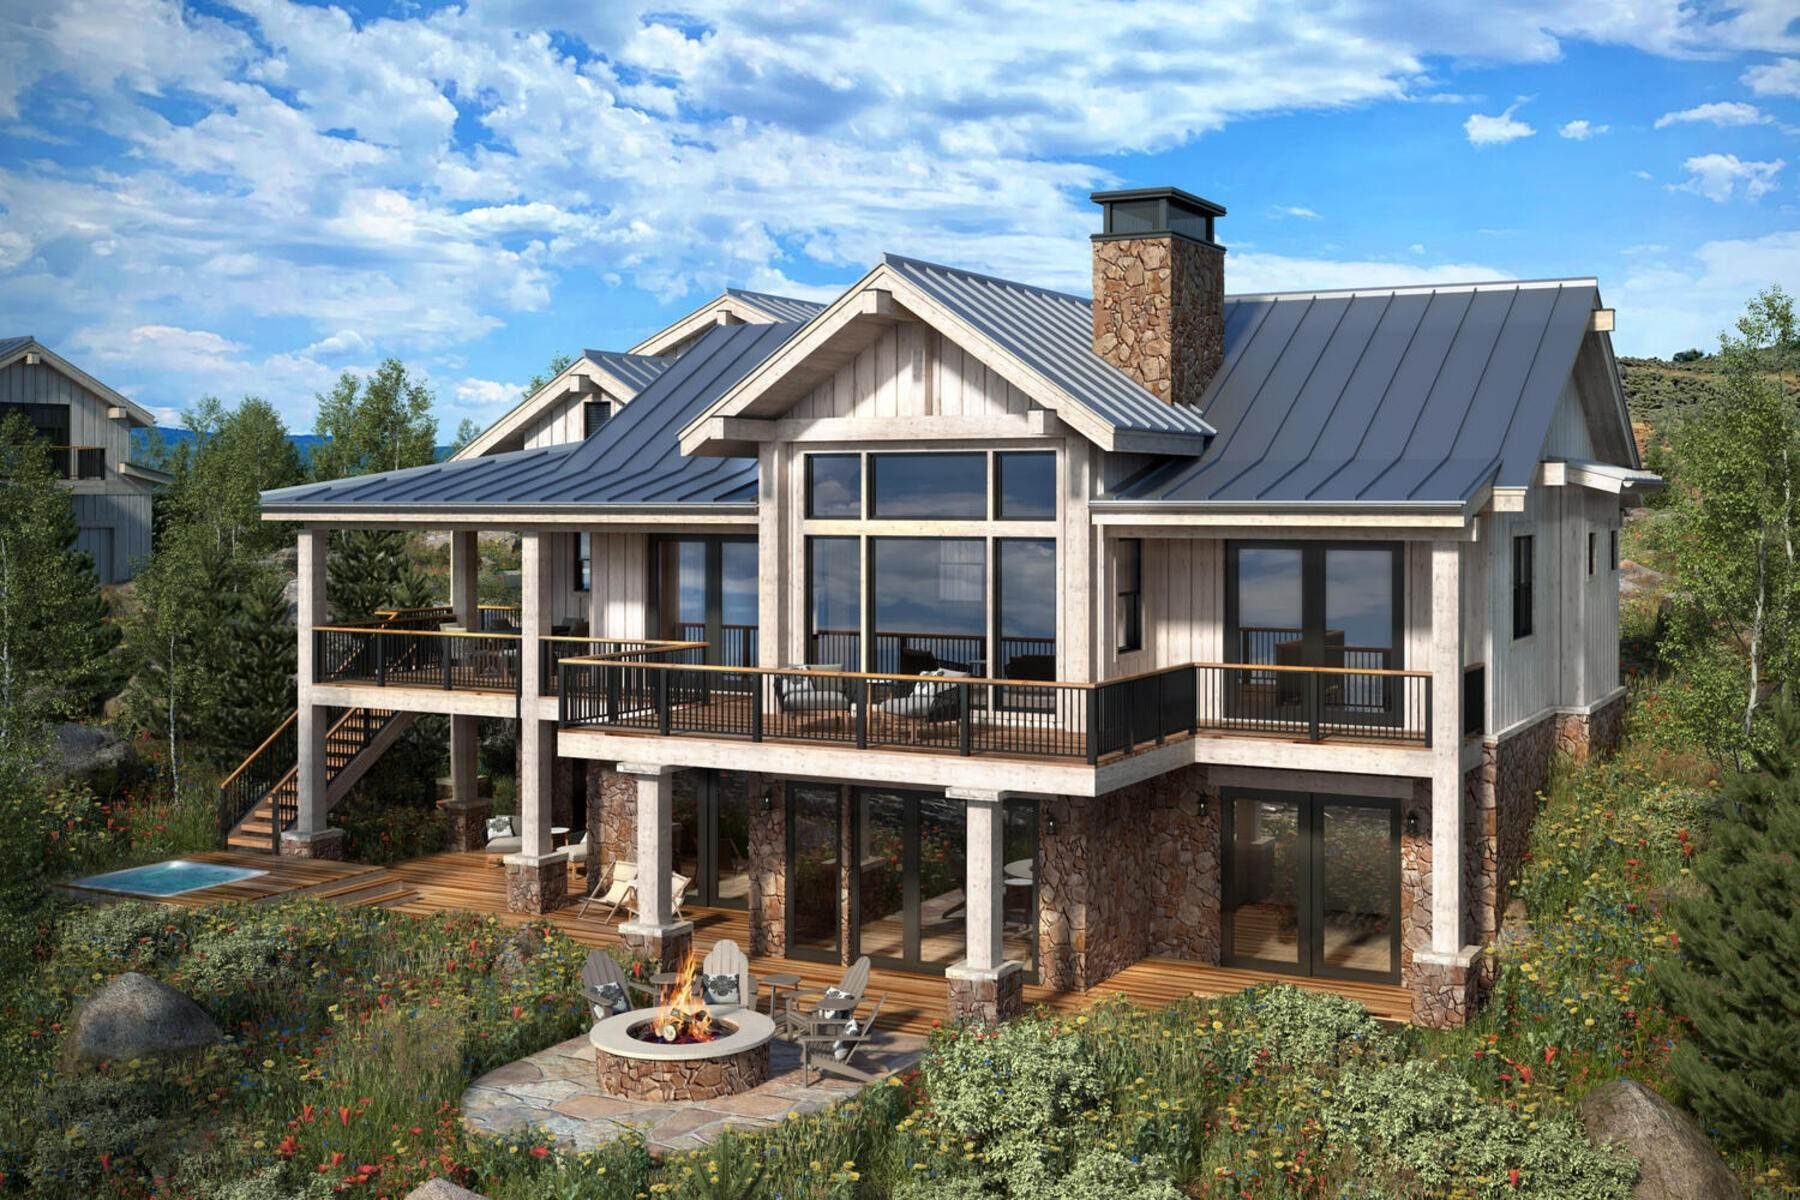 4. fractional ownership prop for Sale at 1/8 Fractional Ownership Opportunity In Brand New Kingfisher Cabin 7615 E Stardust Court #319E, 5.13 Heber City, Utah 84032 United States